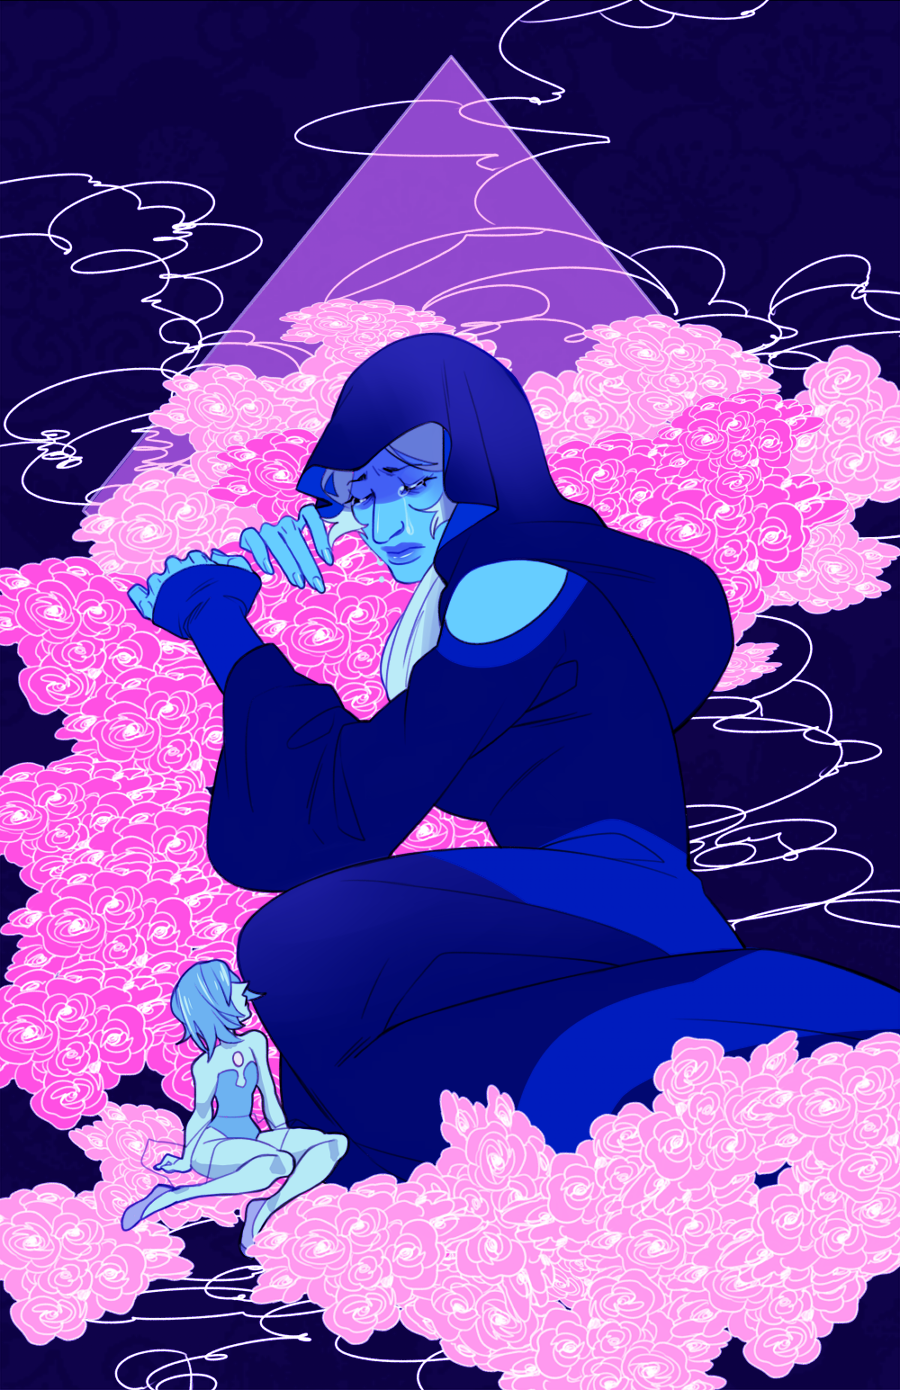 """Blue Diamond "" will be available as a print"